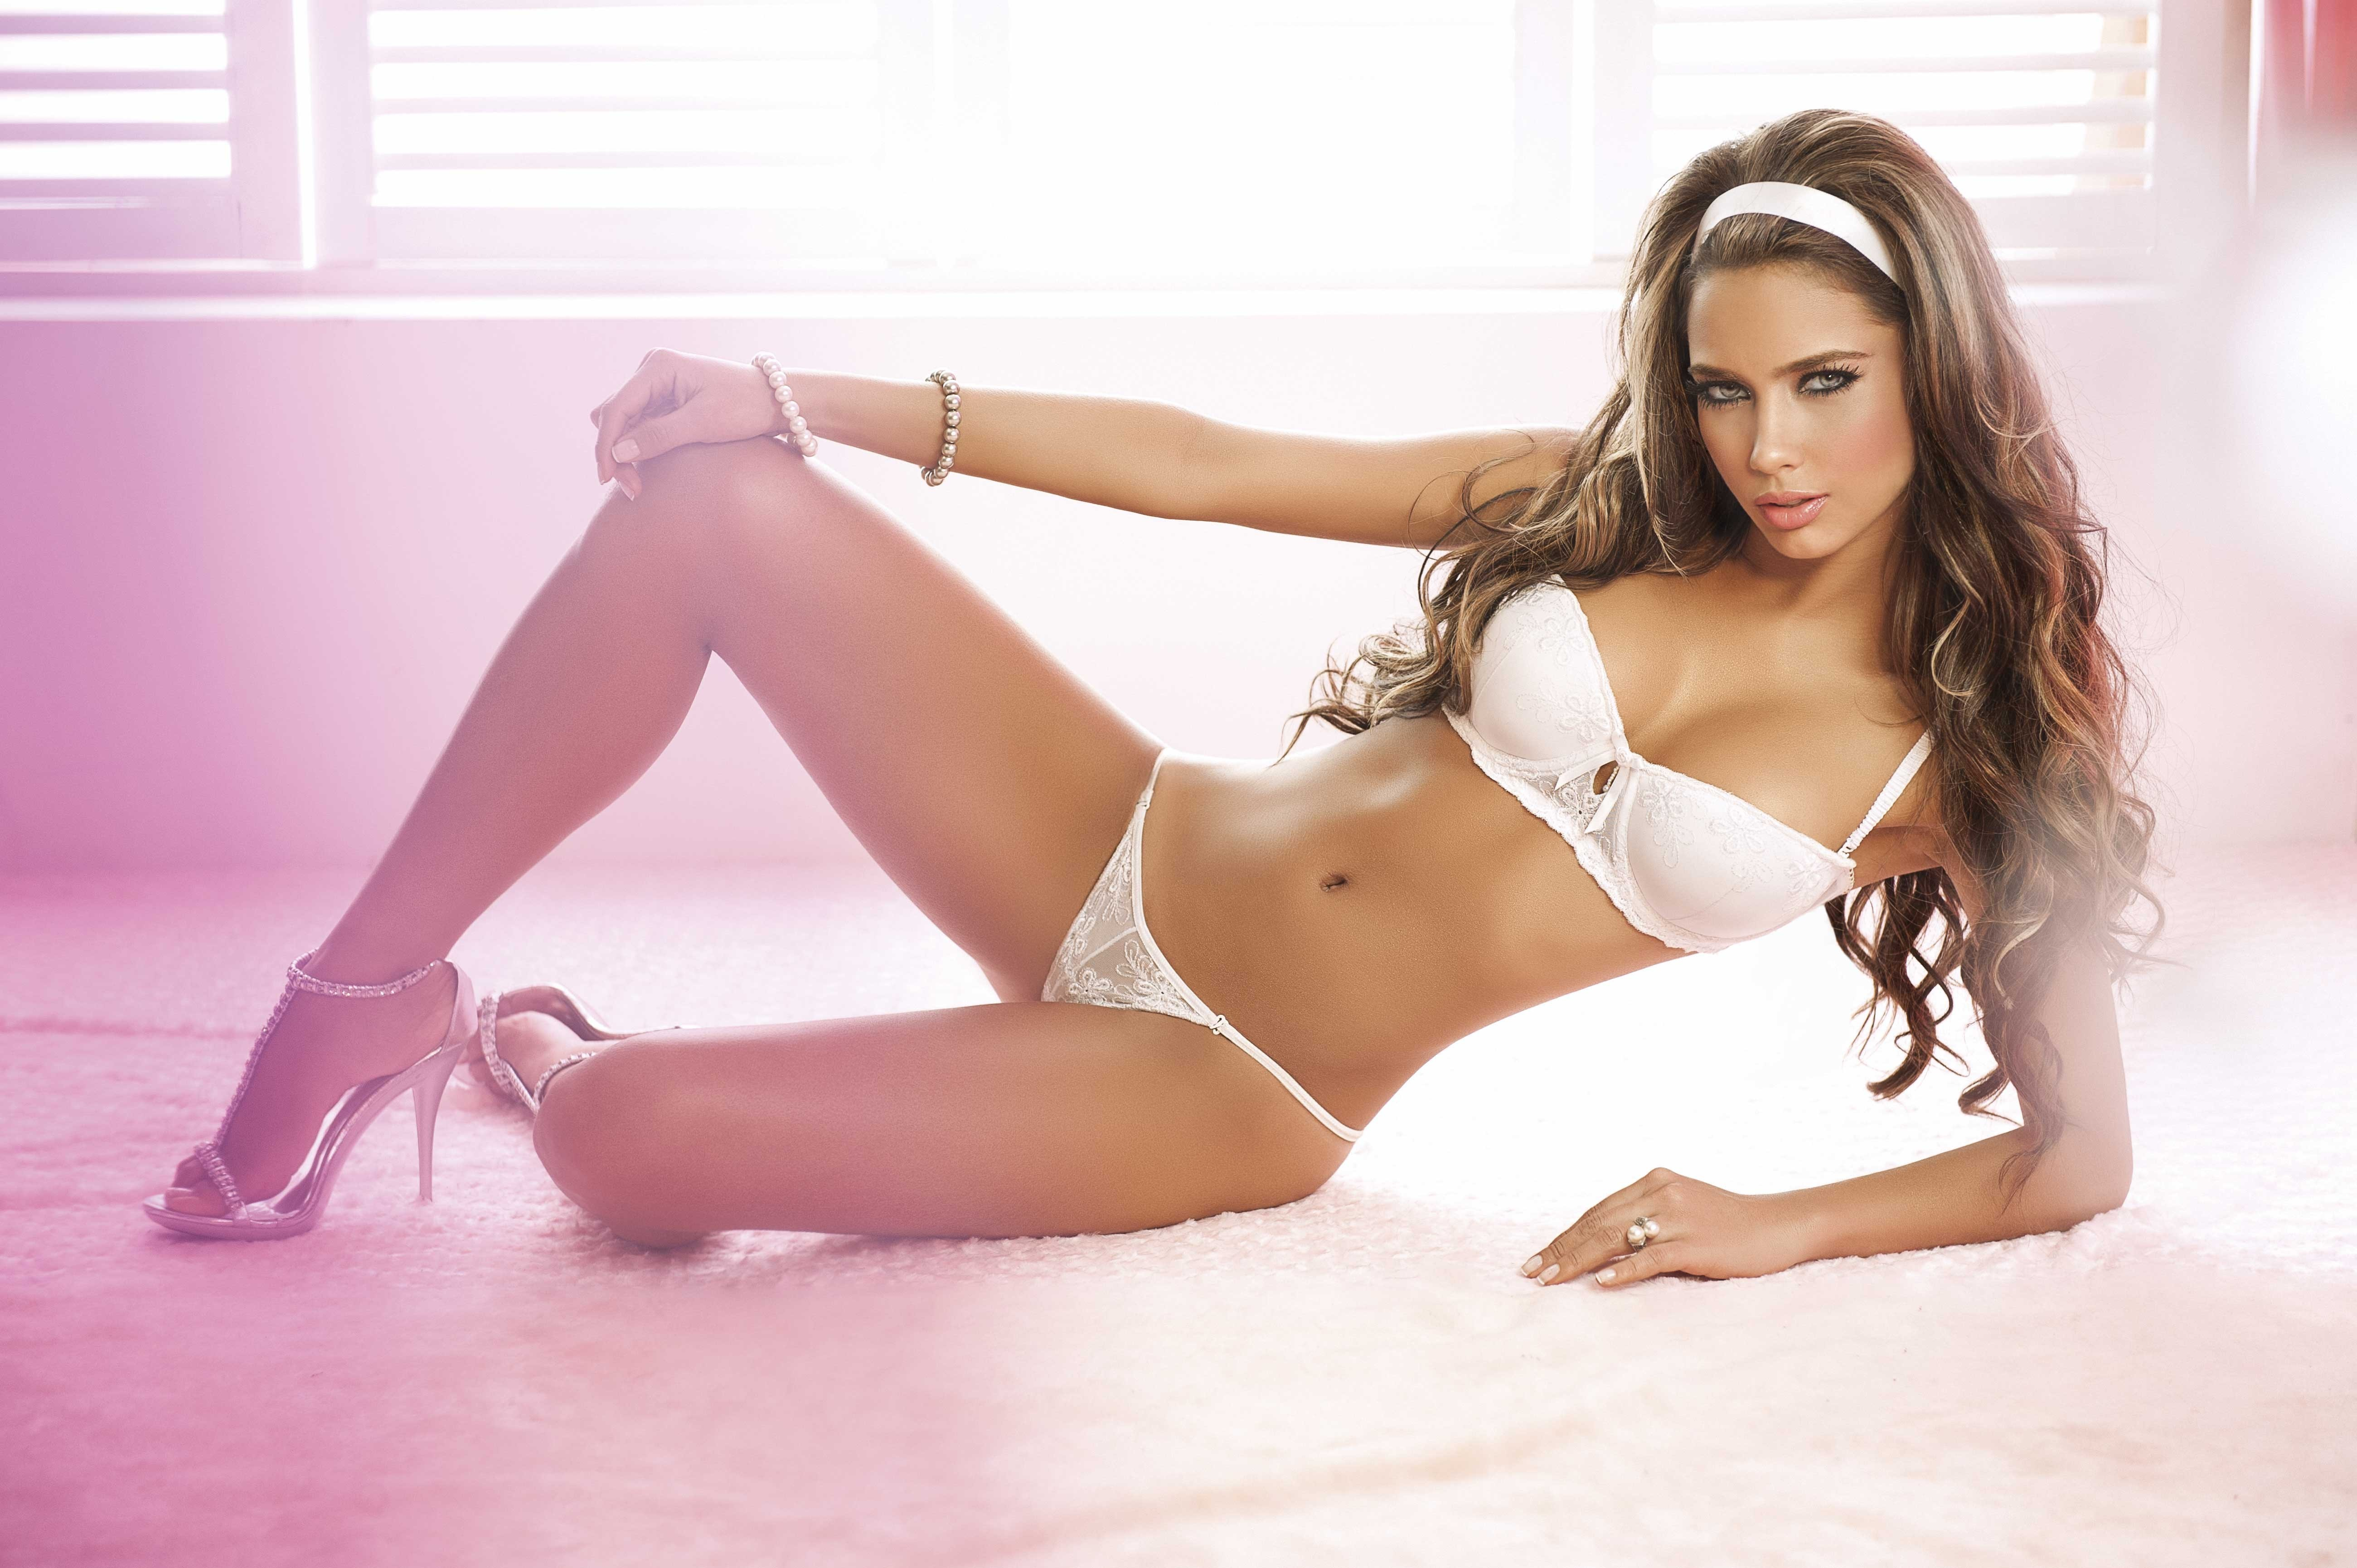 lingerie blondes woman panties HD Wallpaper